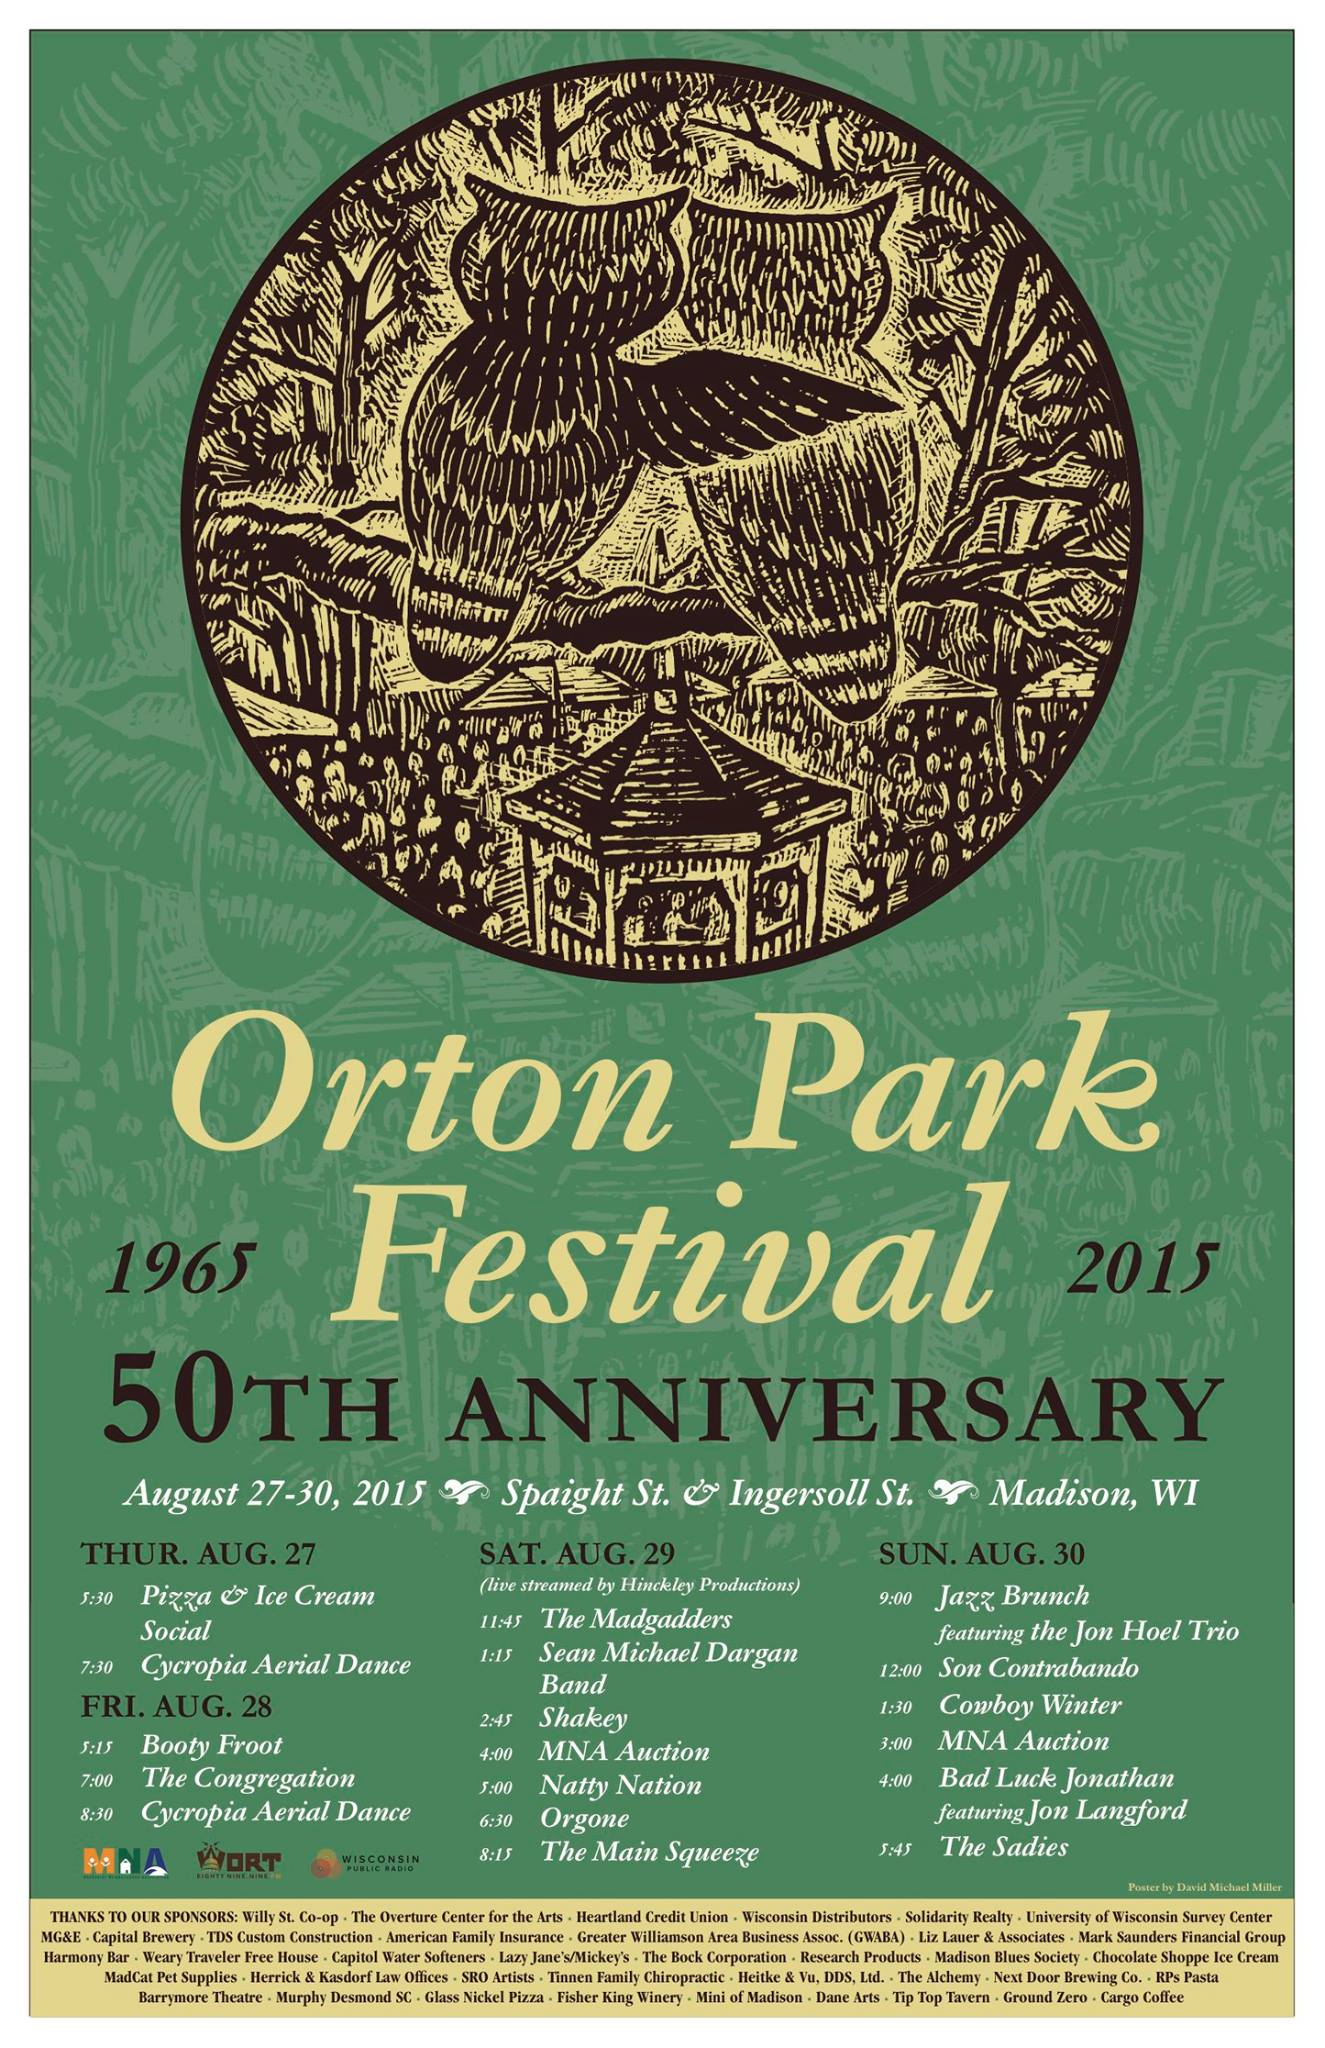 Friday Night At Orton Park Festival >> Orton Park Festival August 22 25 2019 Marquette Neighborhood